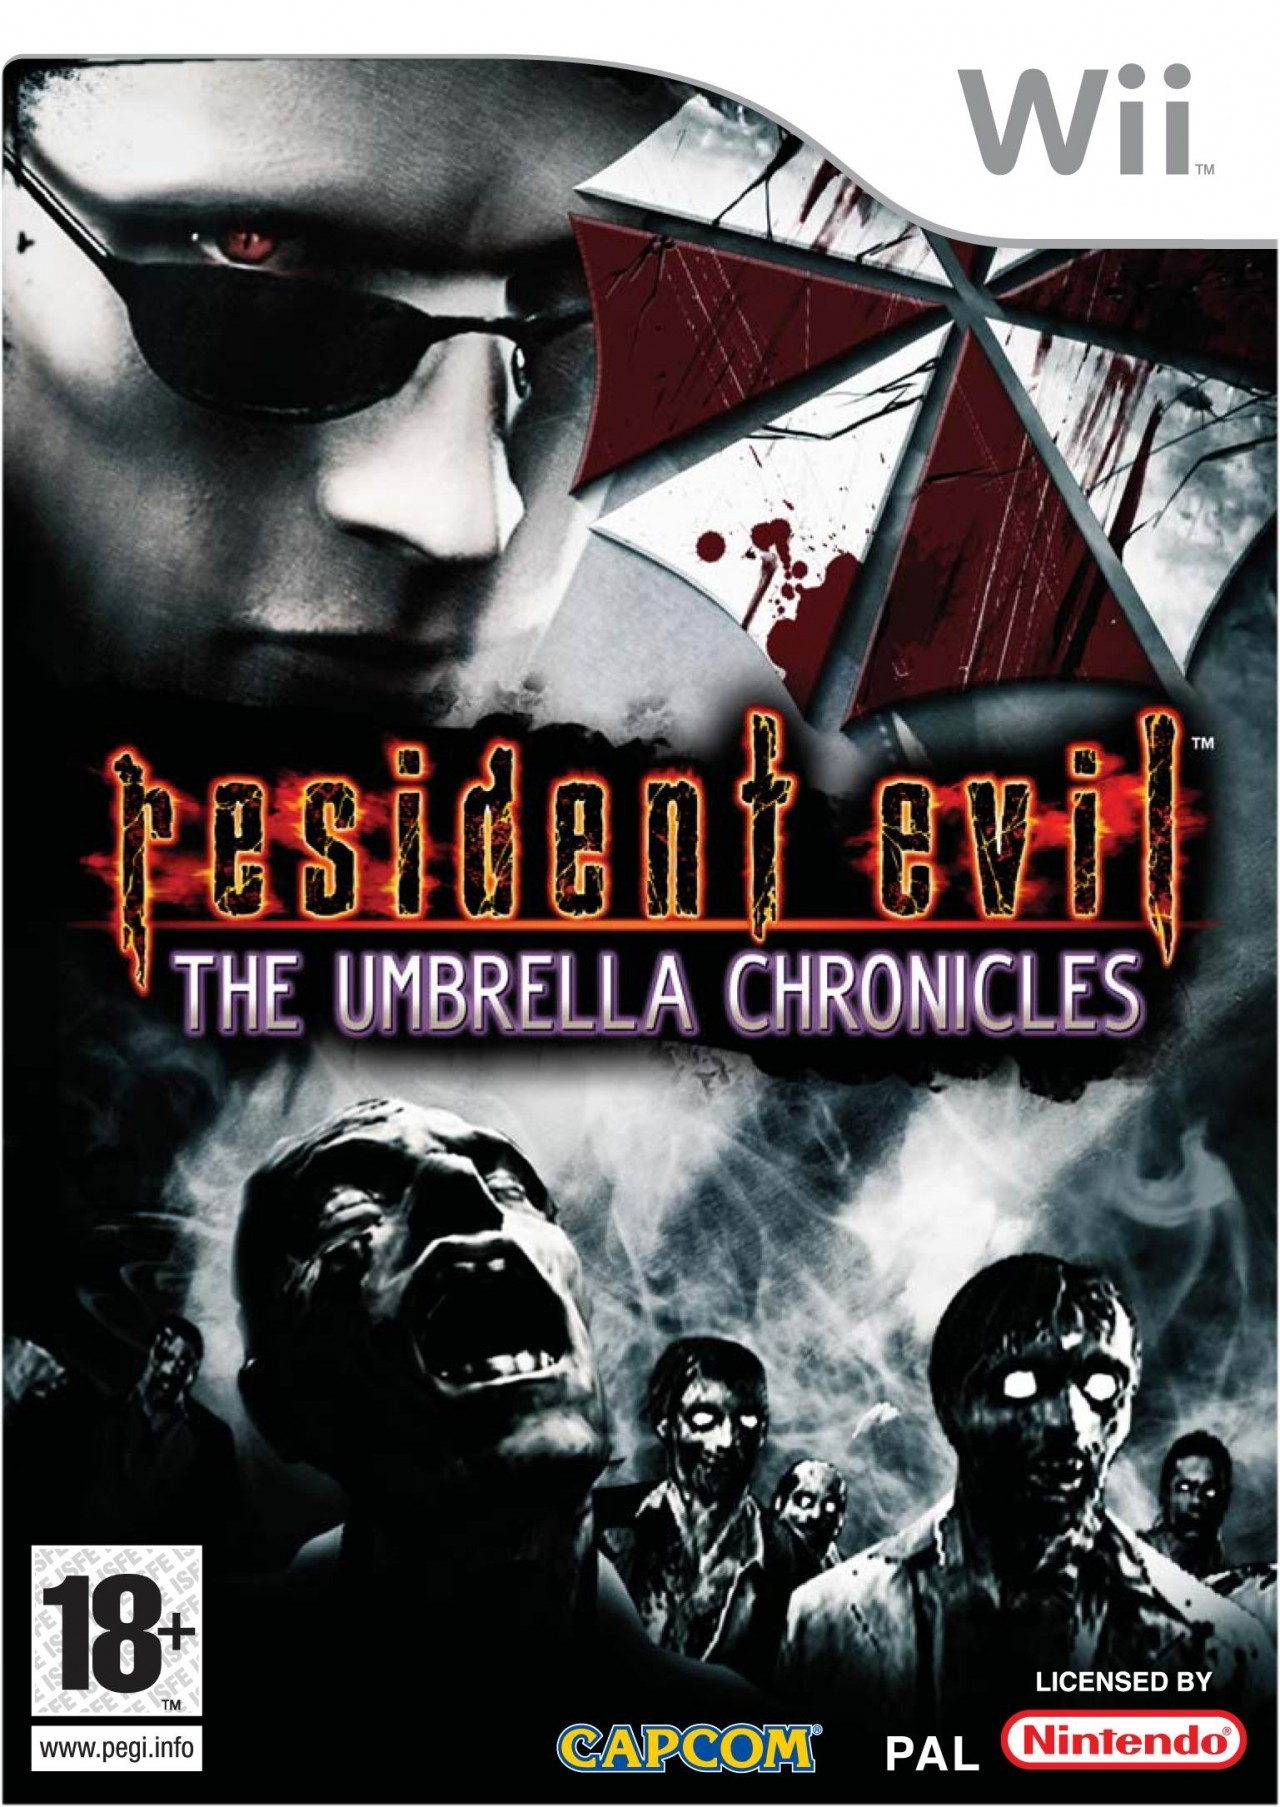 Wii Save - Nintendo Wii Game Saves > Resident Evil: The Umbrella